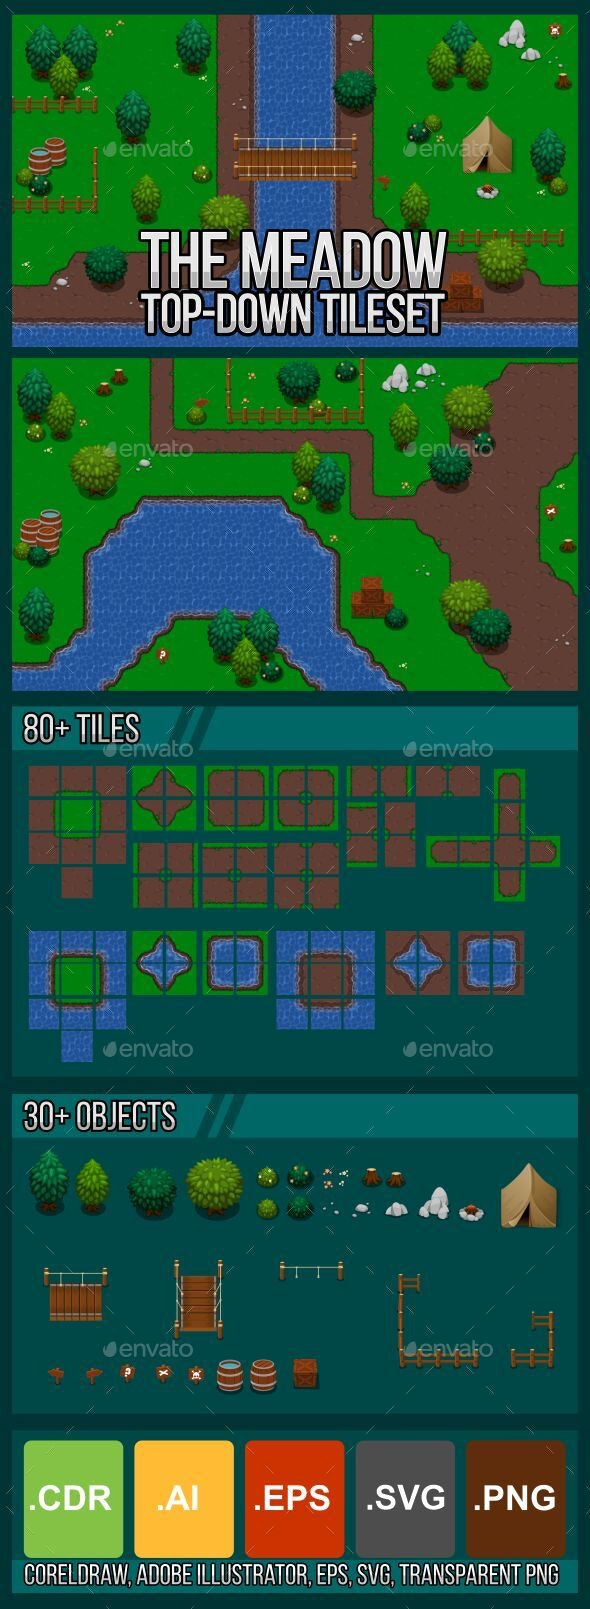 The Meadow - Top Down Tileset - Tilesets Game Assets